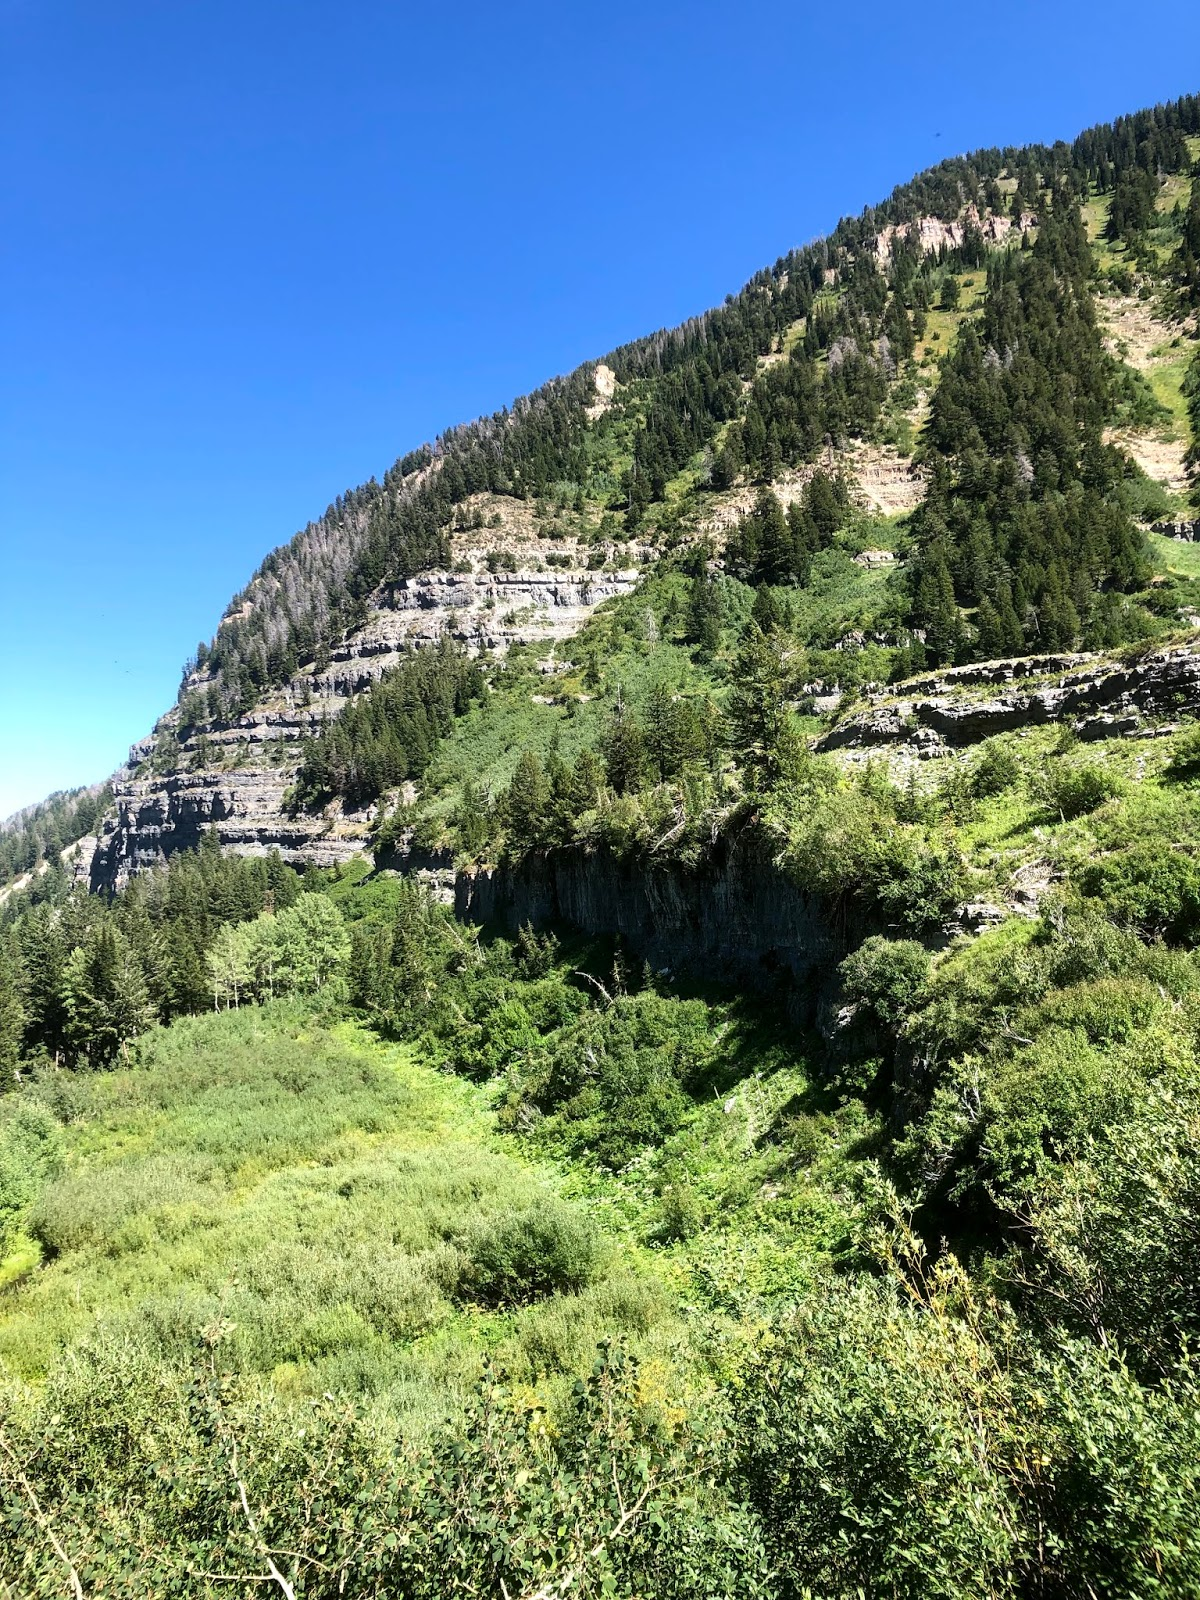 mount timpanogos, mount timpanogos hikes, hiking in the mountains, trail running, trails, running, mountains, mountain trails, utah mountains, running up a mountain, where to hike in utah,